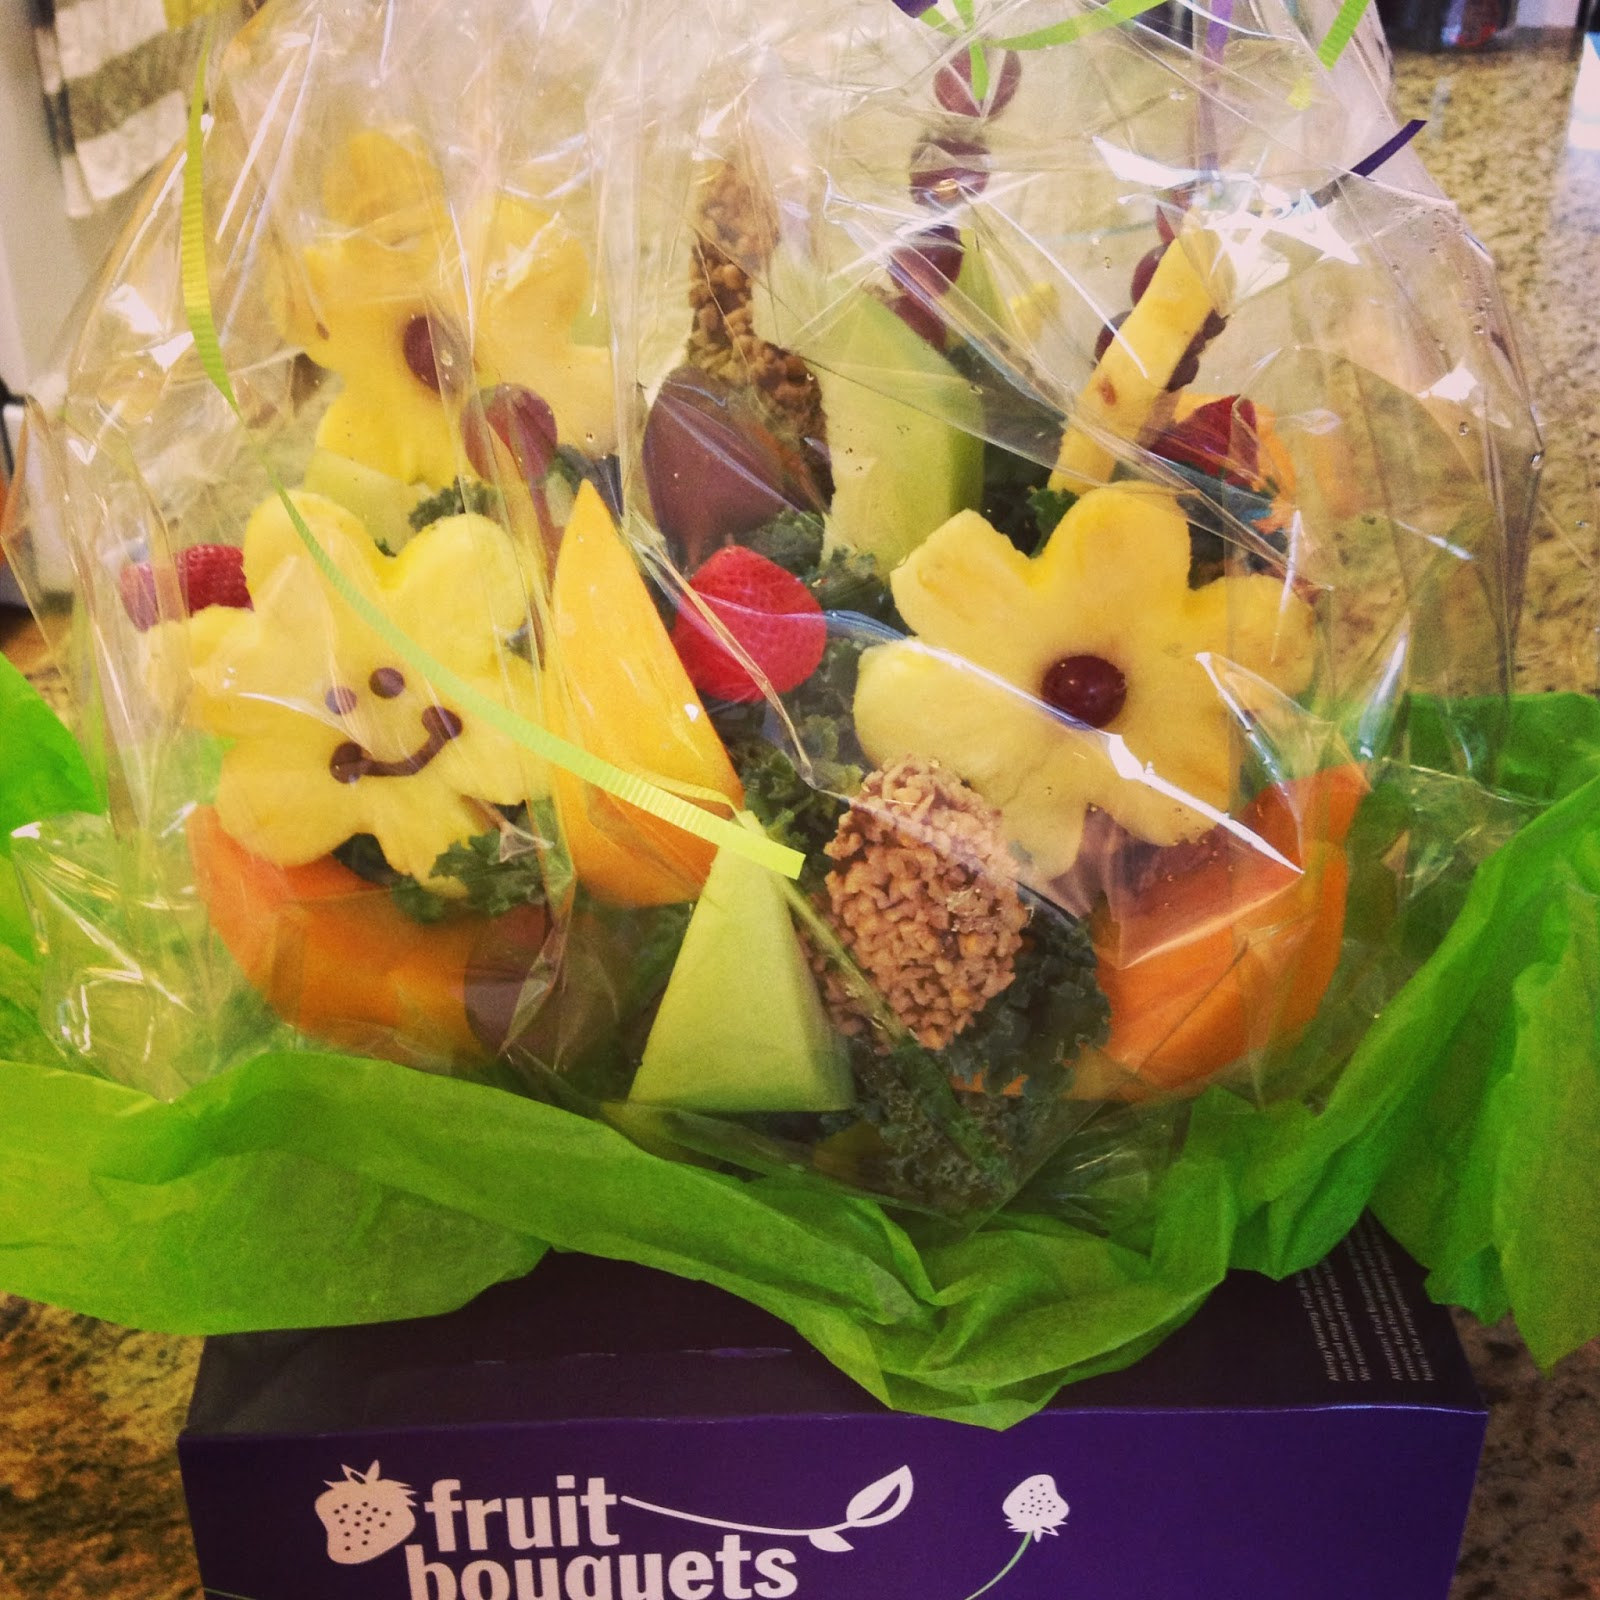 Why have fruit when you can have a fruit bouquet